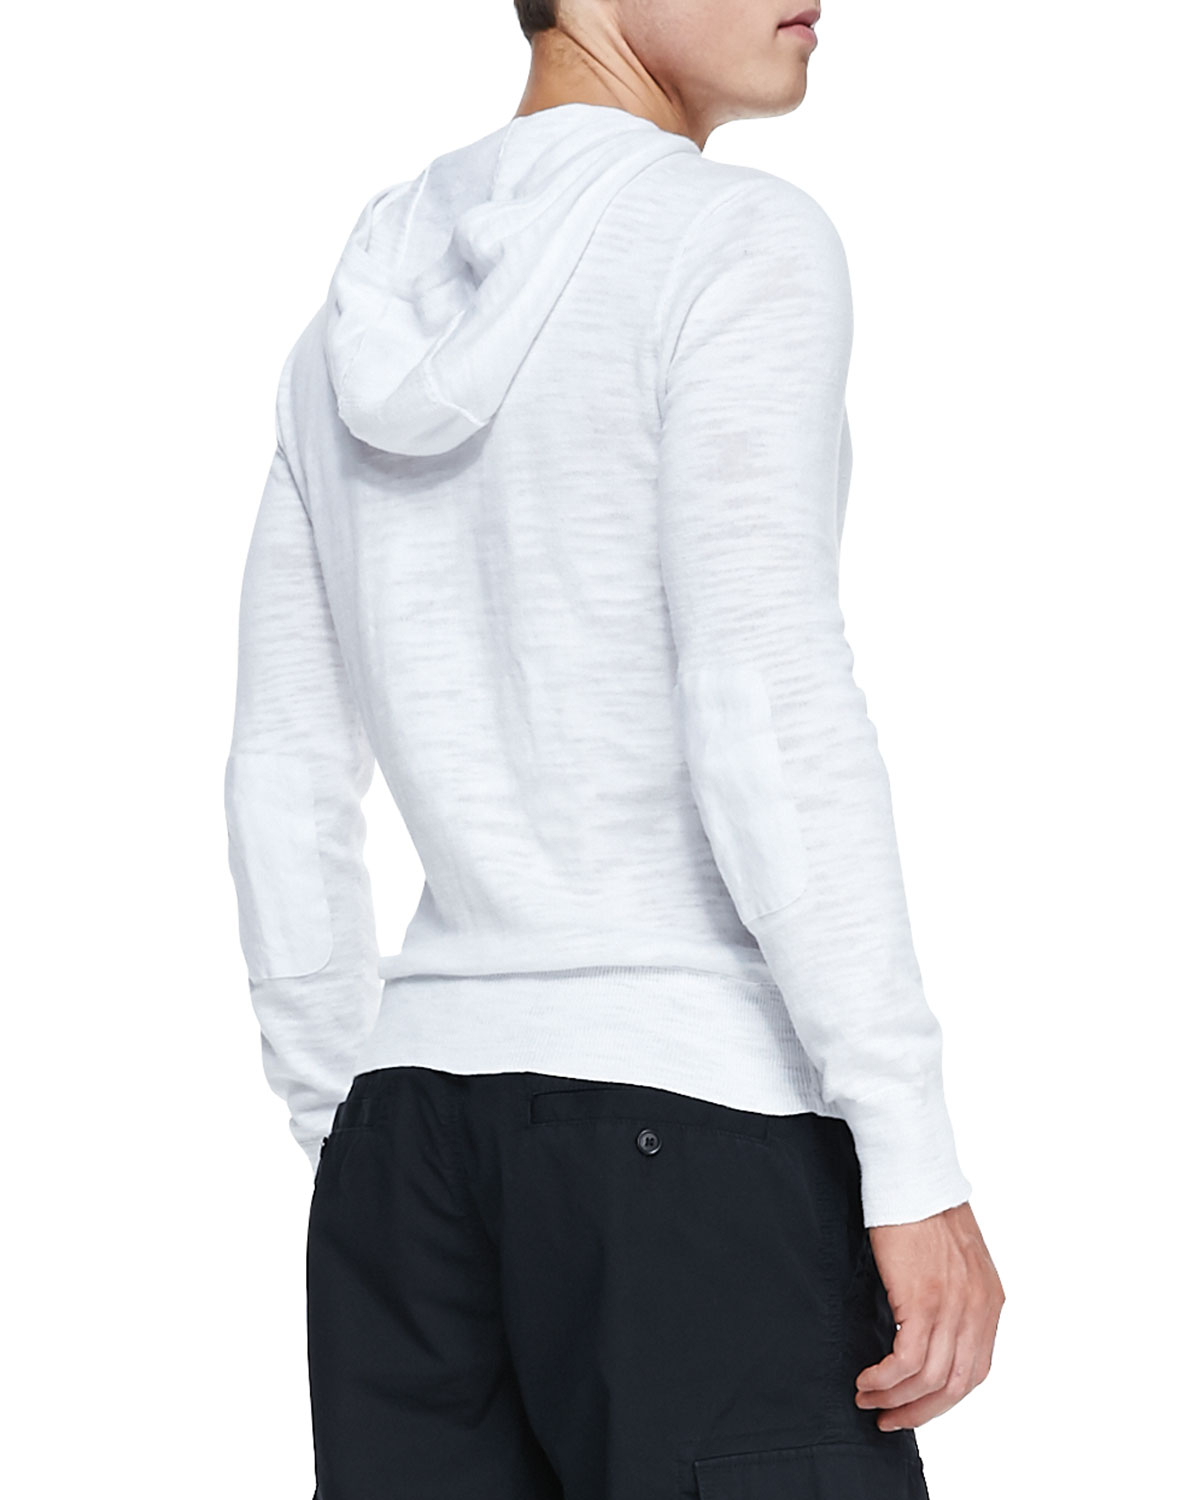 John varvatos Pullover Hoodie Sweater White in White for Men | Lyst